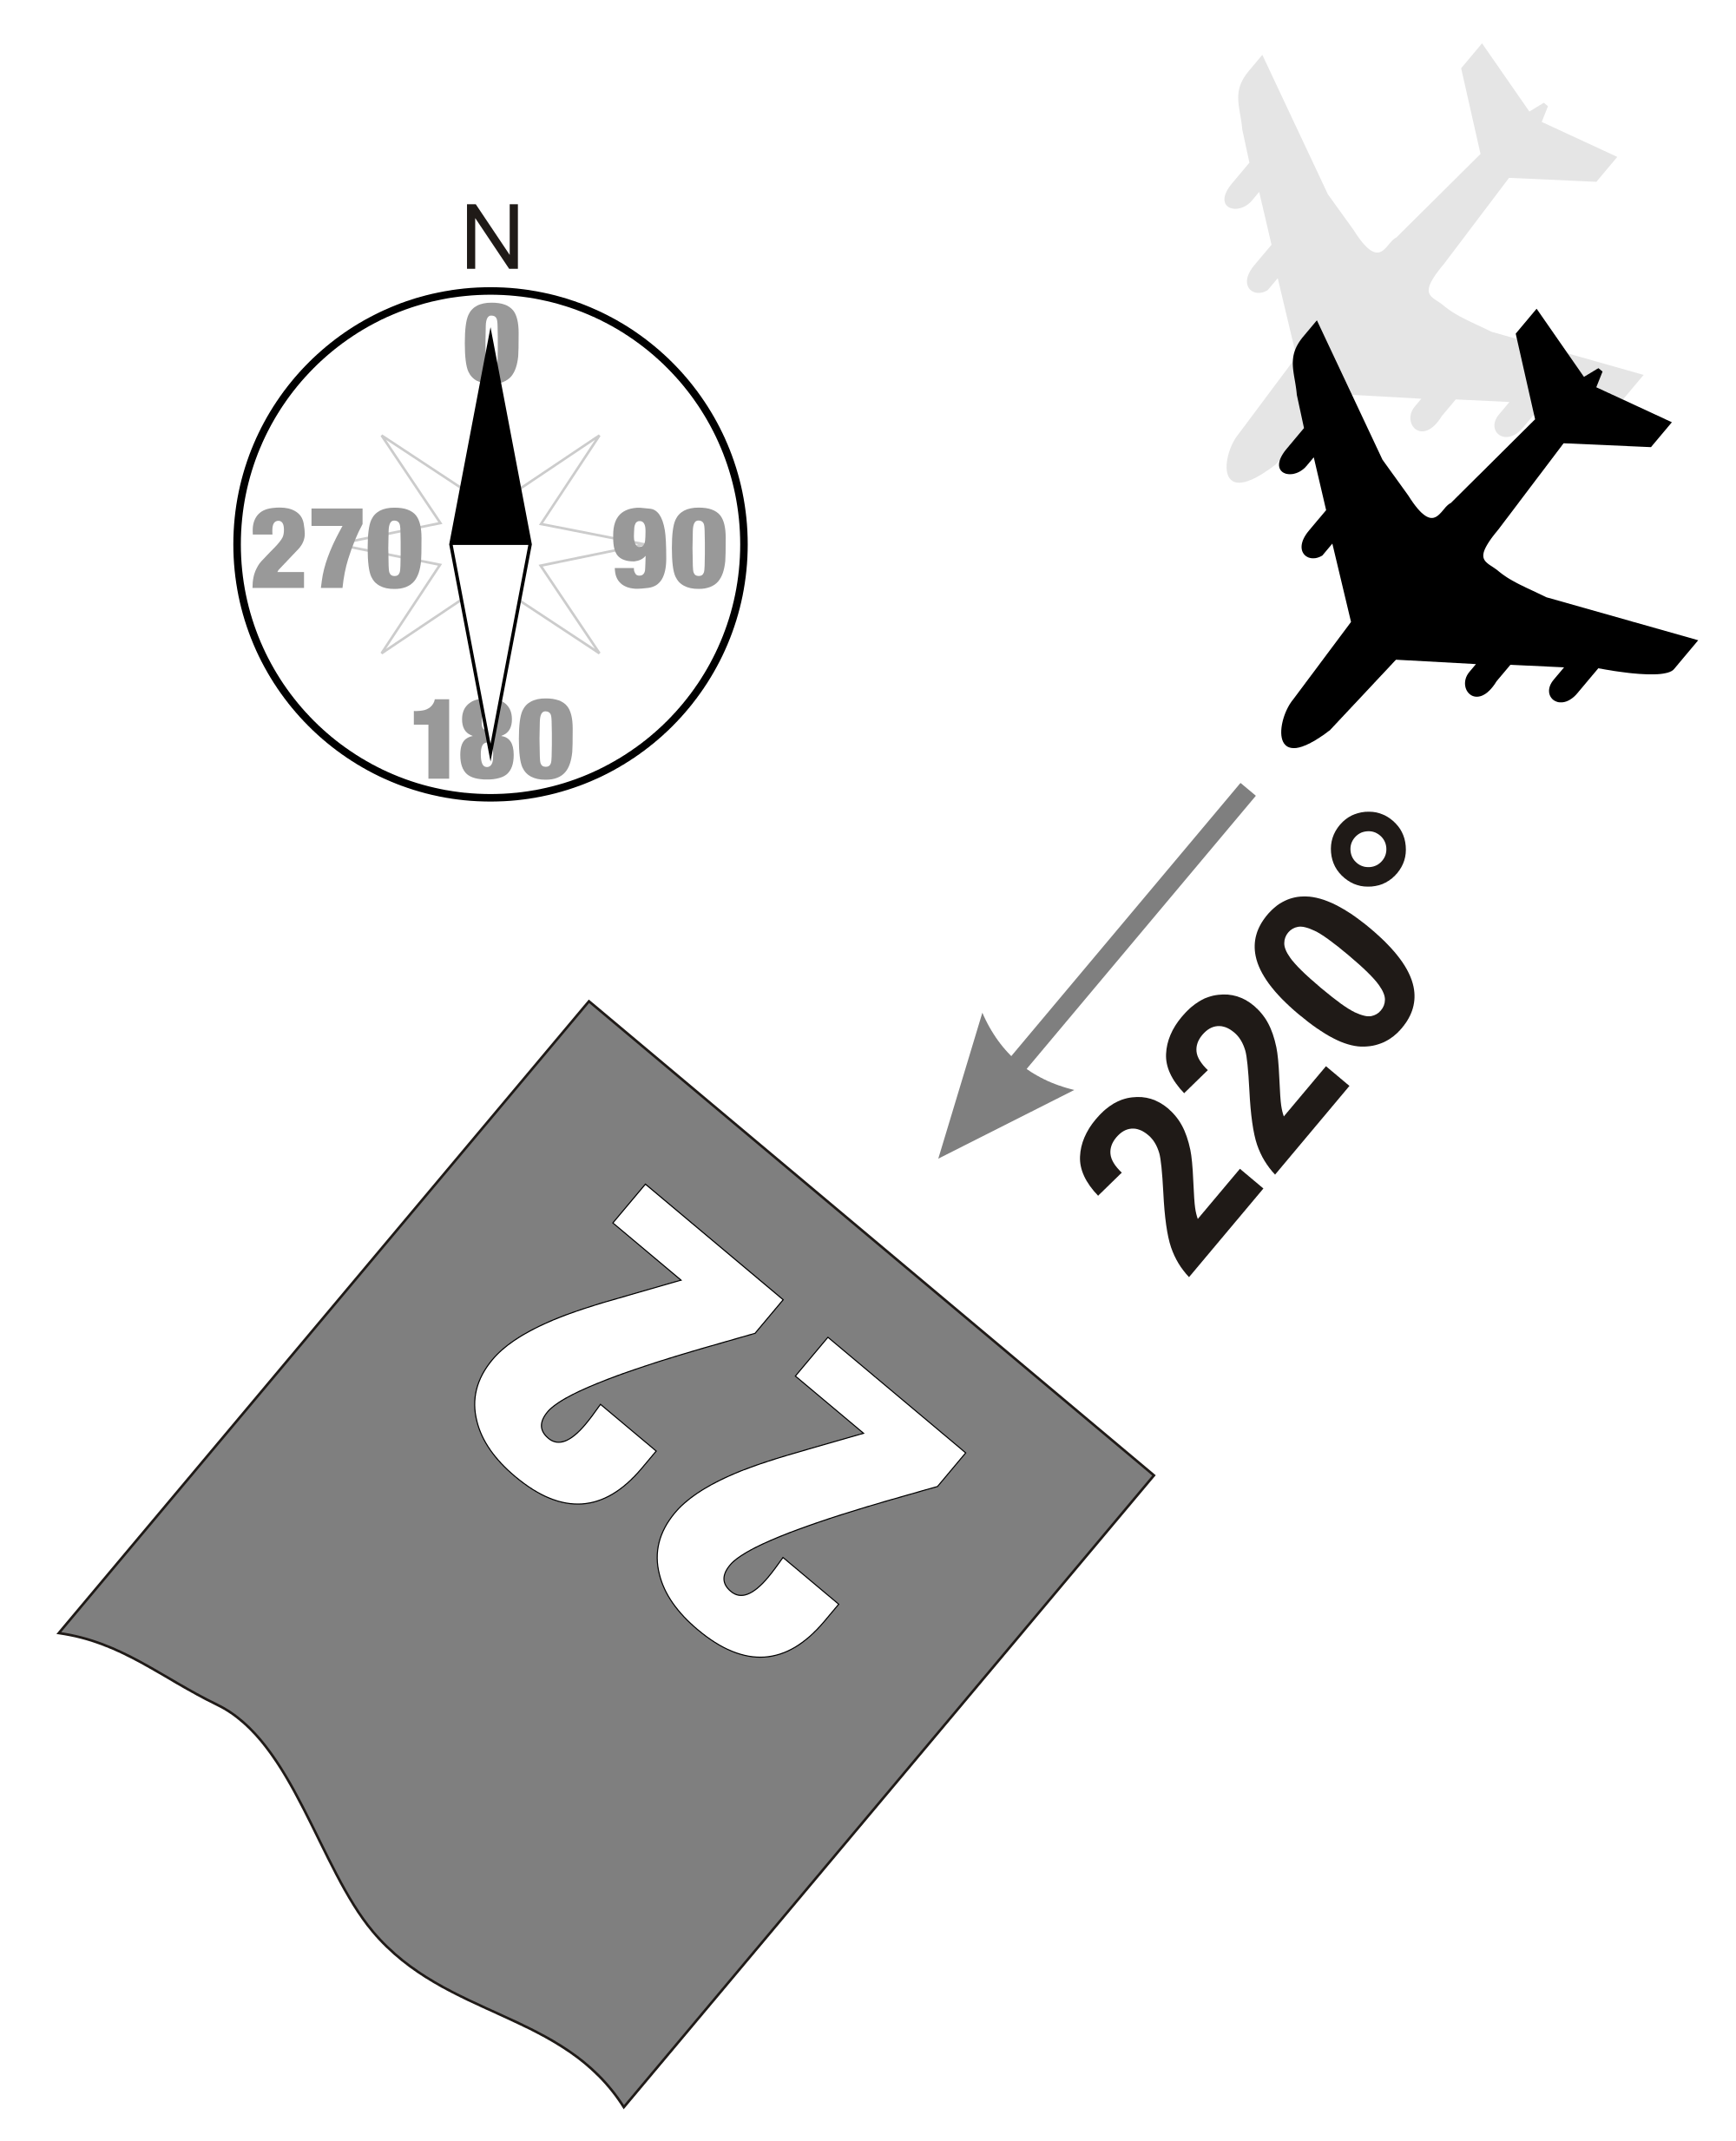 Flying by the Numbers: How to Decipher Two-Digit Airport Runway